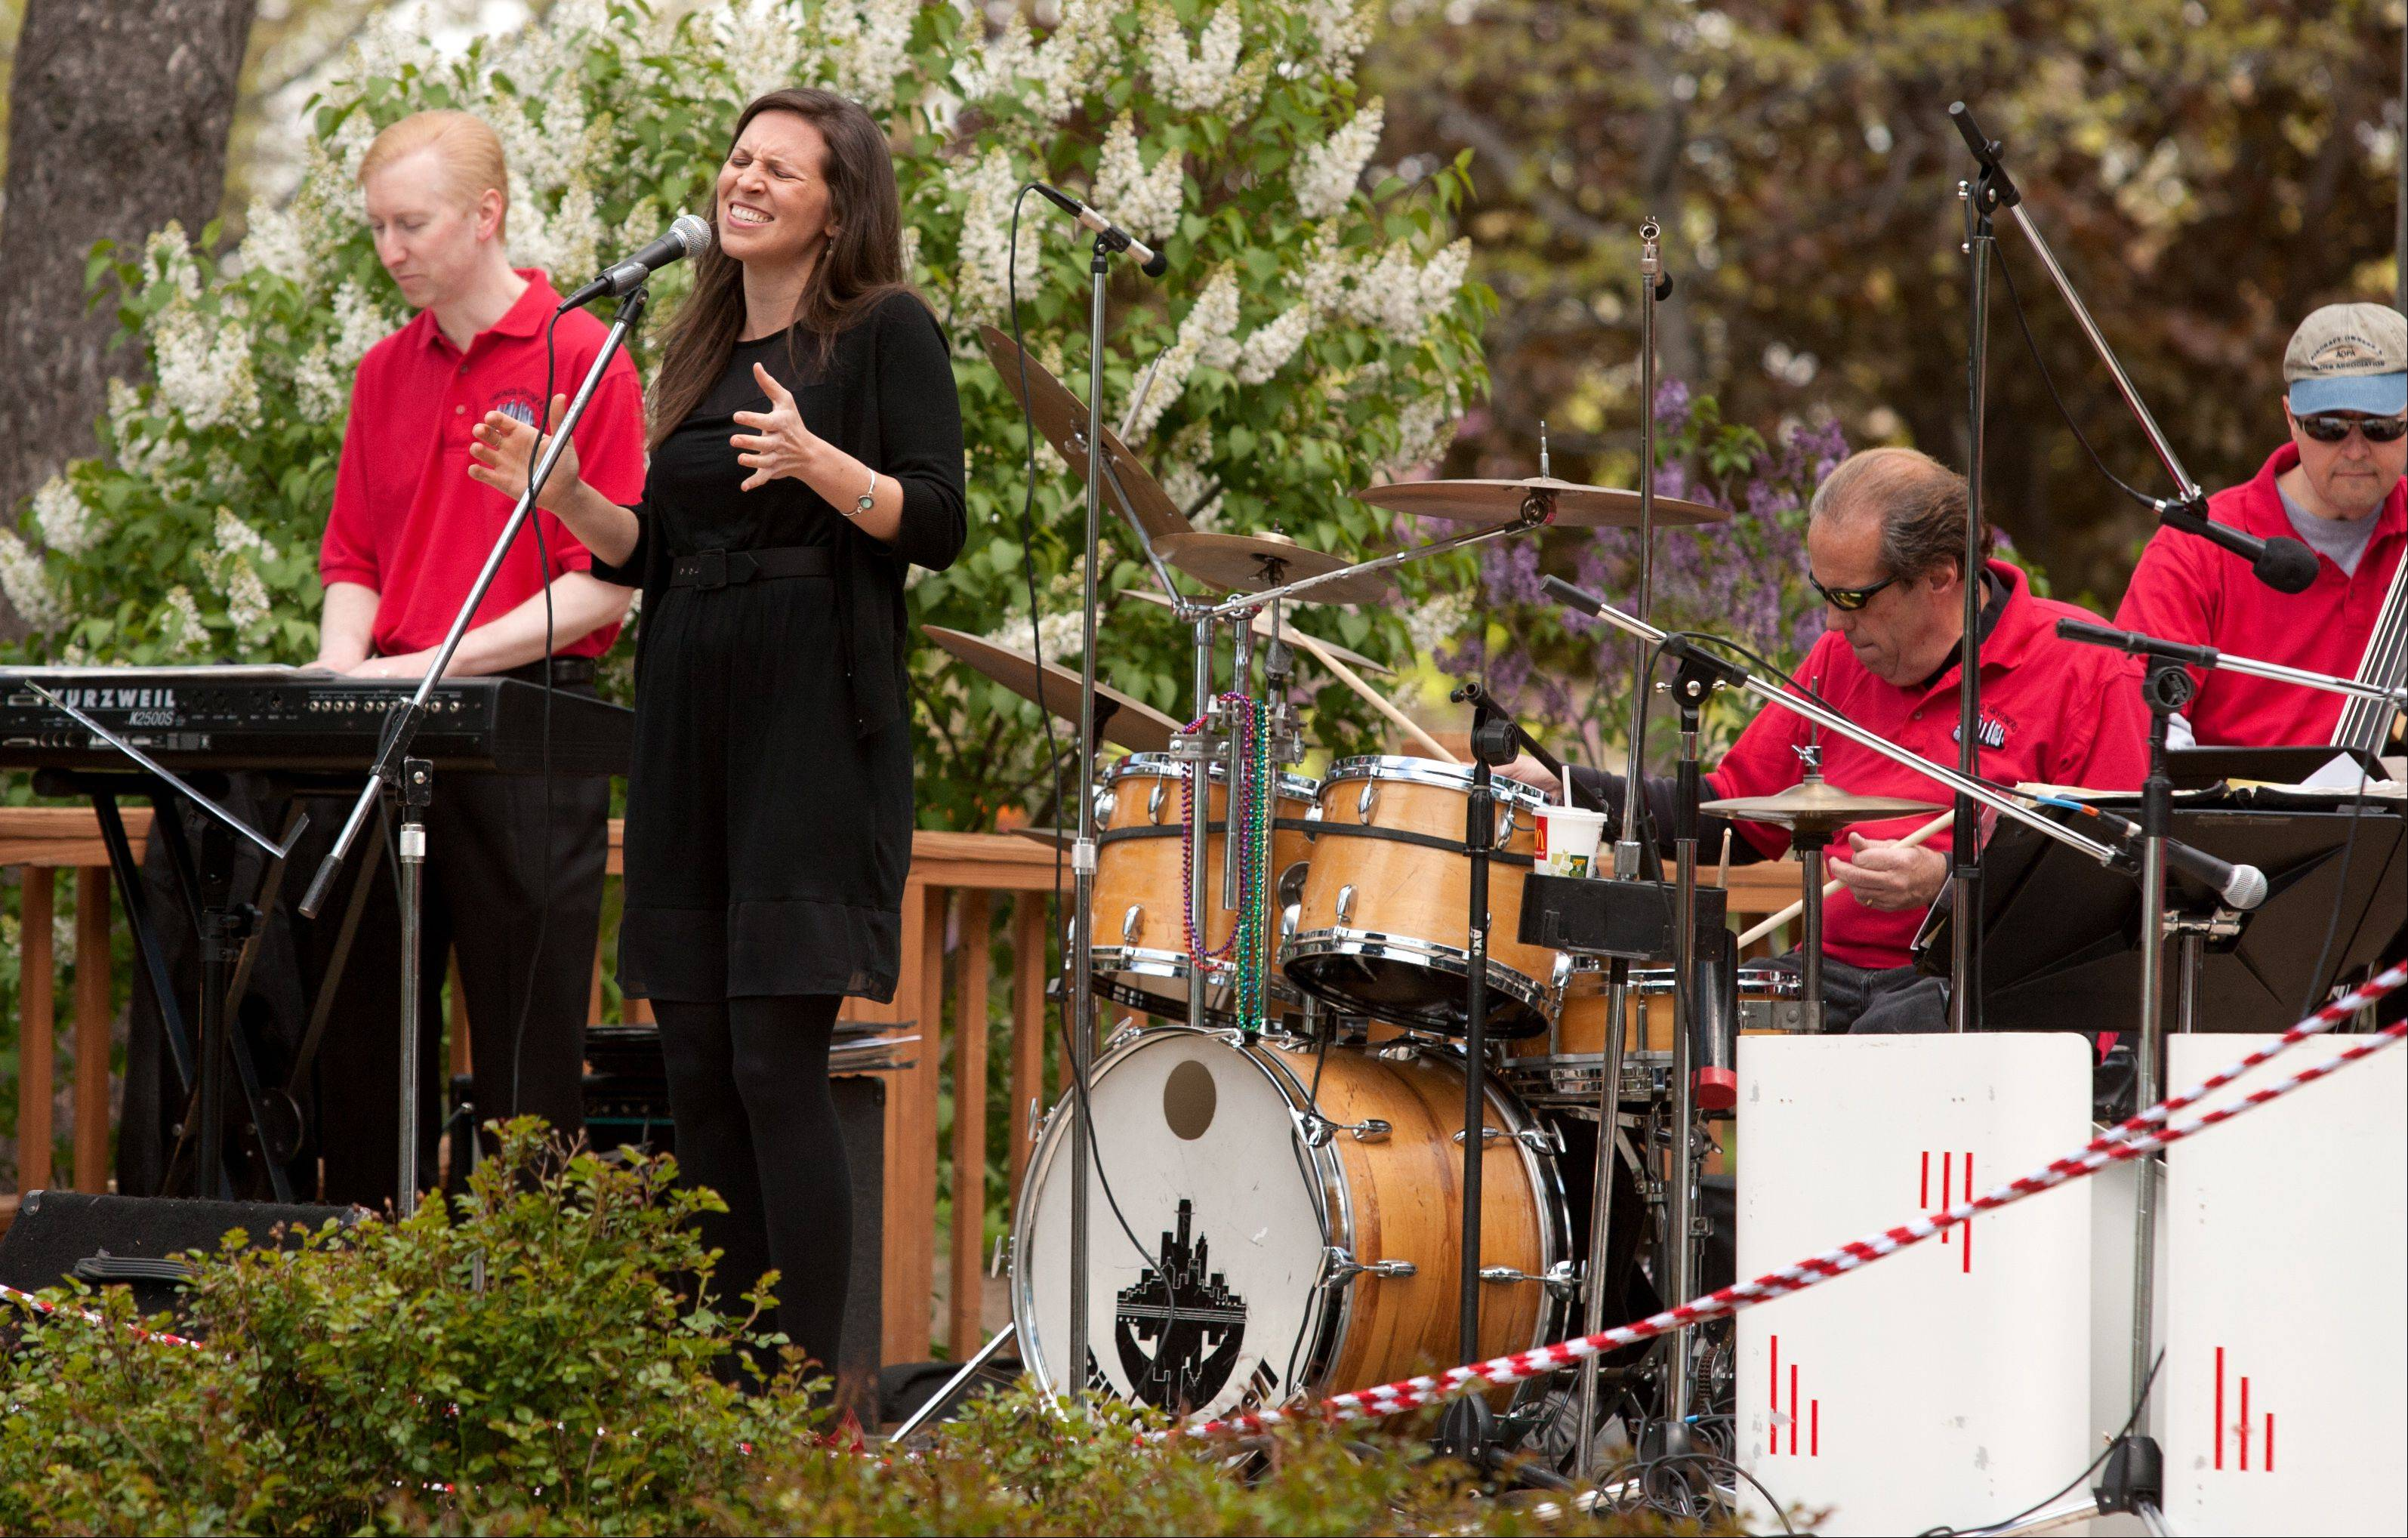 Lead singer Leslie Beukelman, of Bill O'Connell's Chicago Skyliners Big Band, performs at Lilacia Park in Lombard Sunday. O'Connell plays the drums.